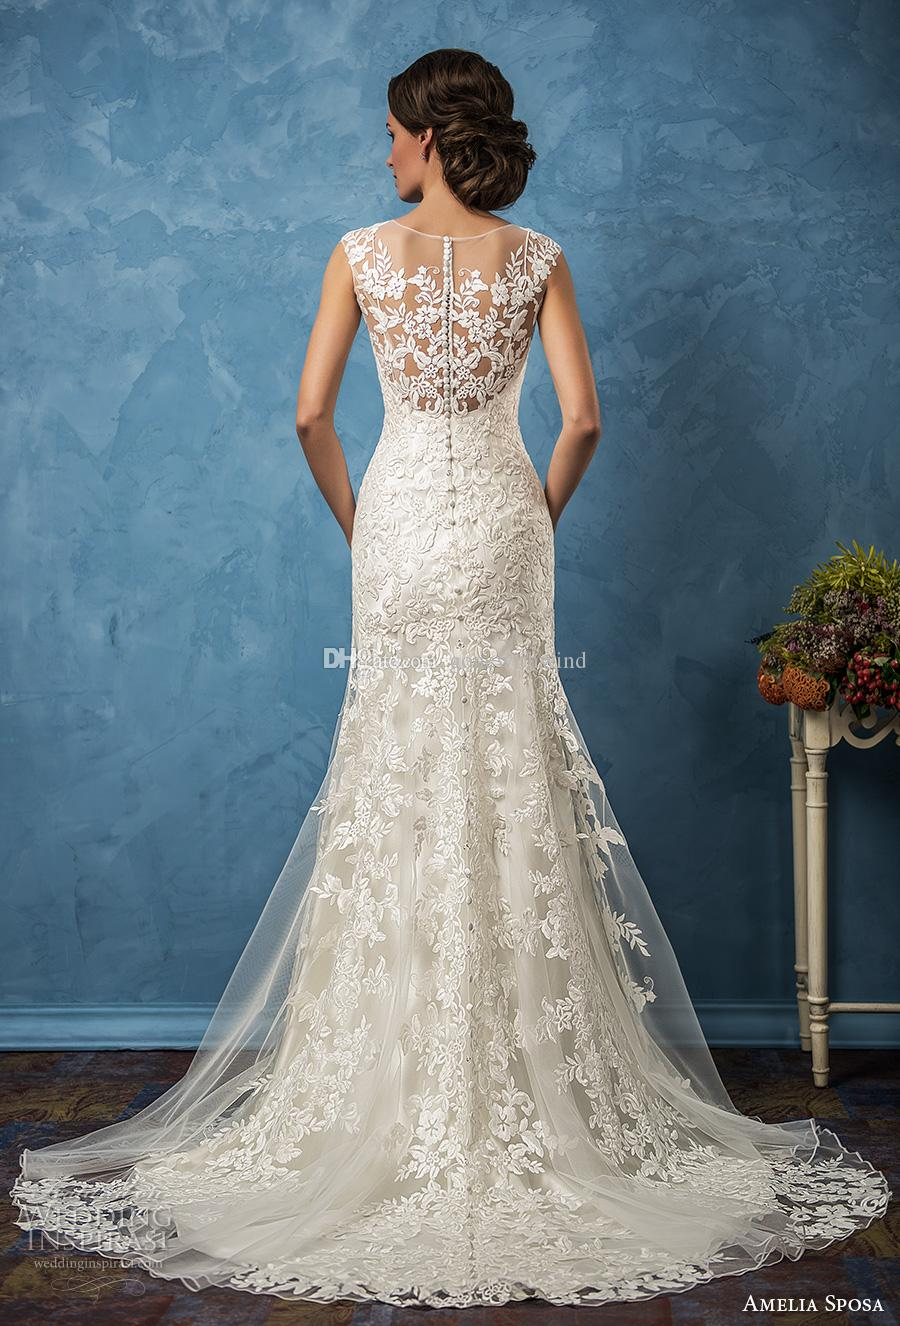 Full Embellishment Mermaid Lace Wedding Dresses 2017 Amelia Sposa ...